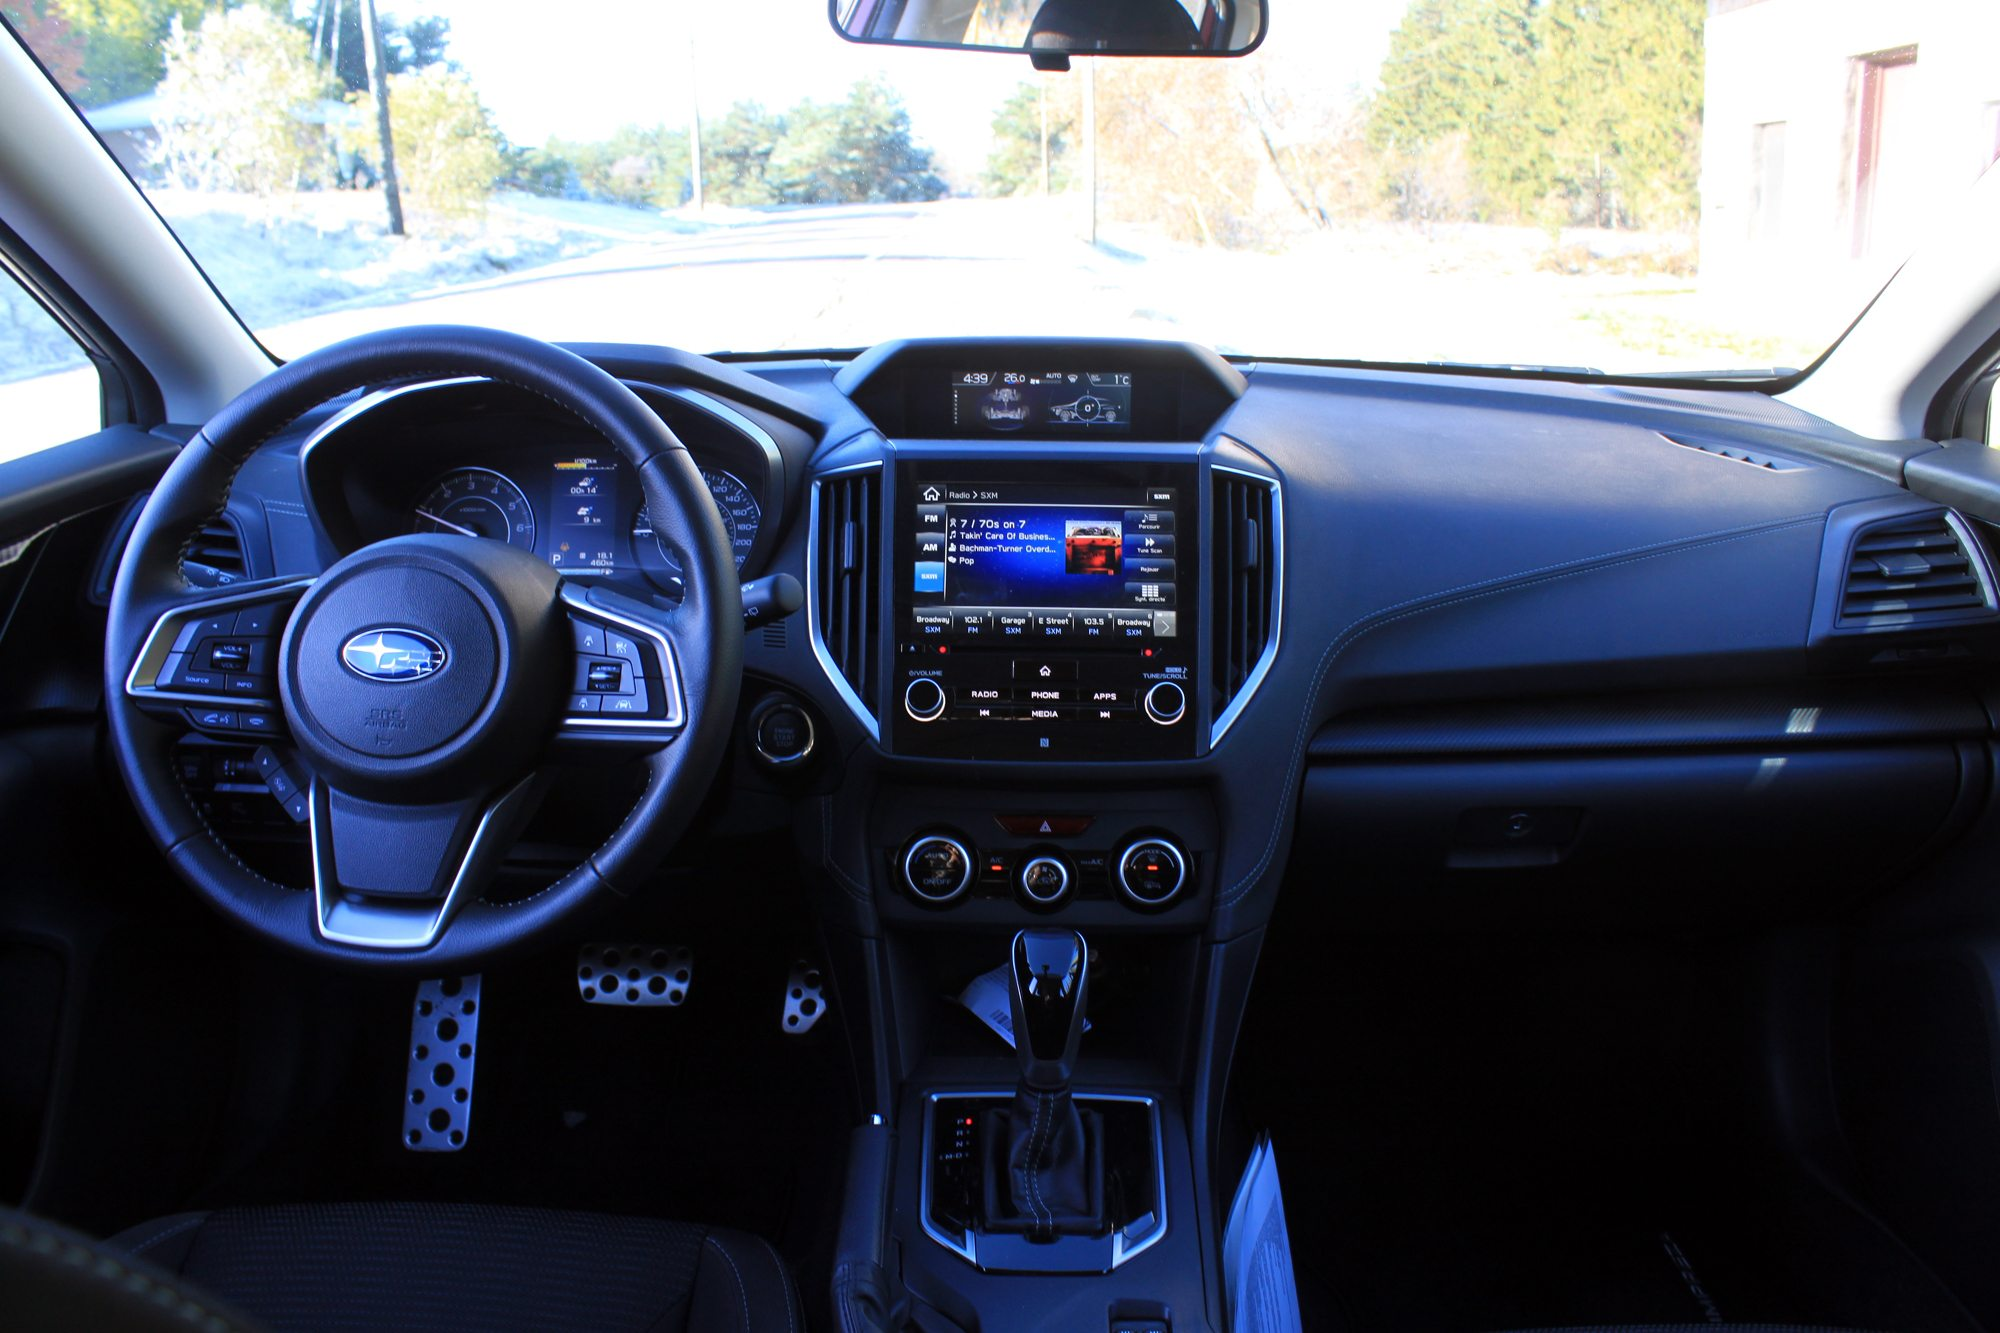 5 Things You Need To Know About The 2017 Subaru Impreza Autoguide